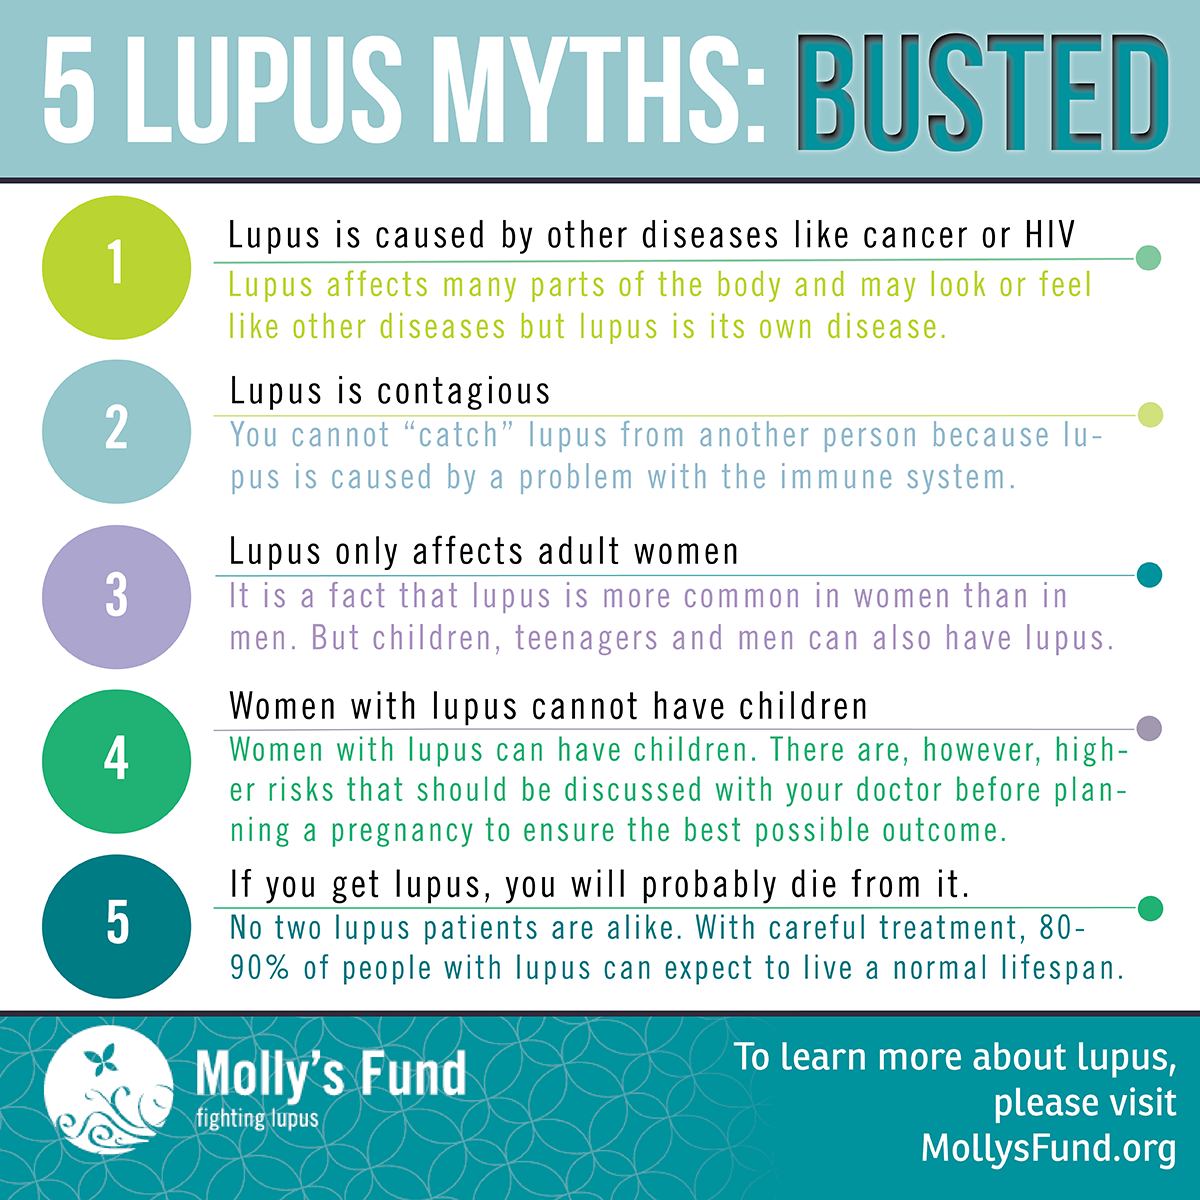 5 MYTHS ABOUT LUPUS: There are many myths about lupus, one ...